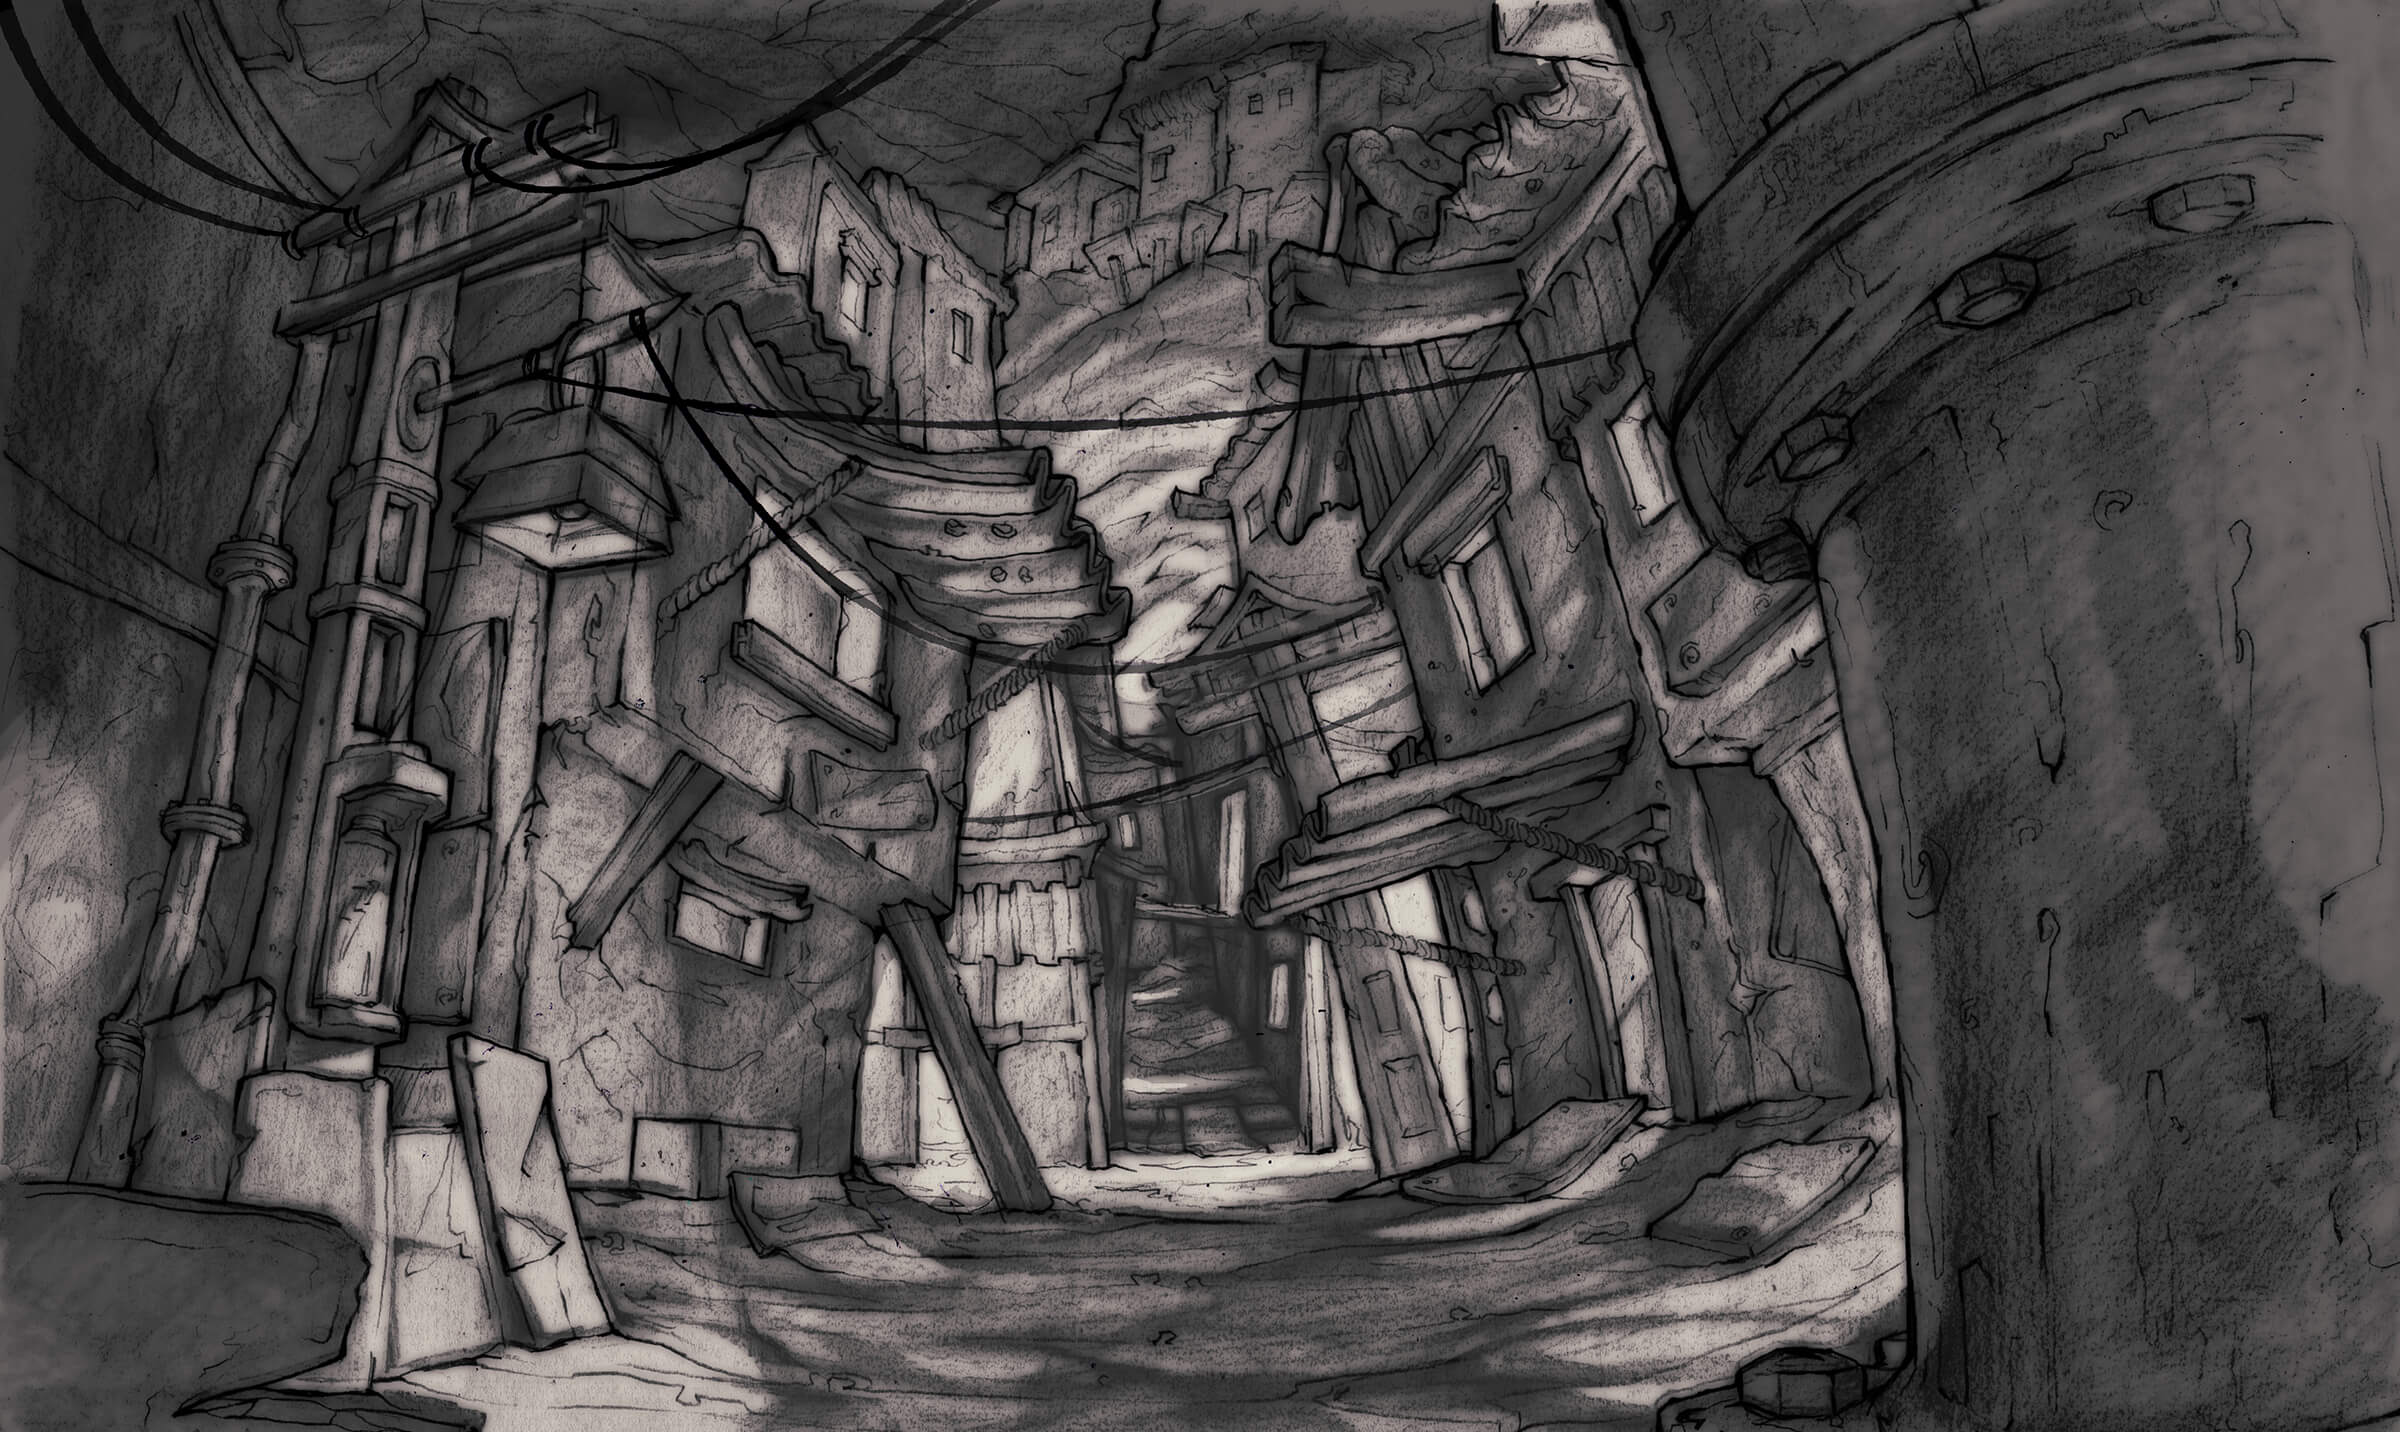 Black-and-white drawing of a dimly lit, narrow alley through a dilapidated cityscape built underground.